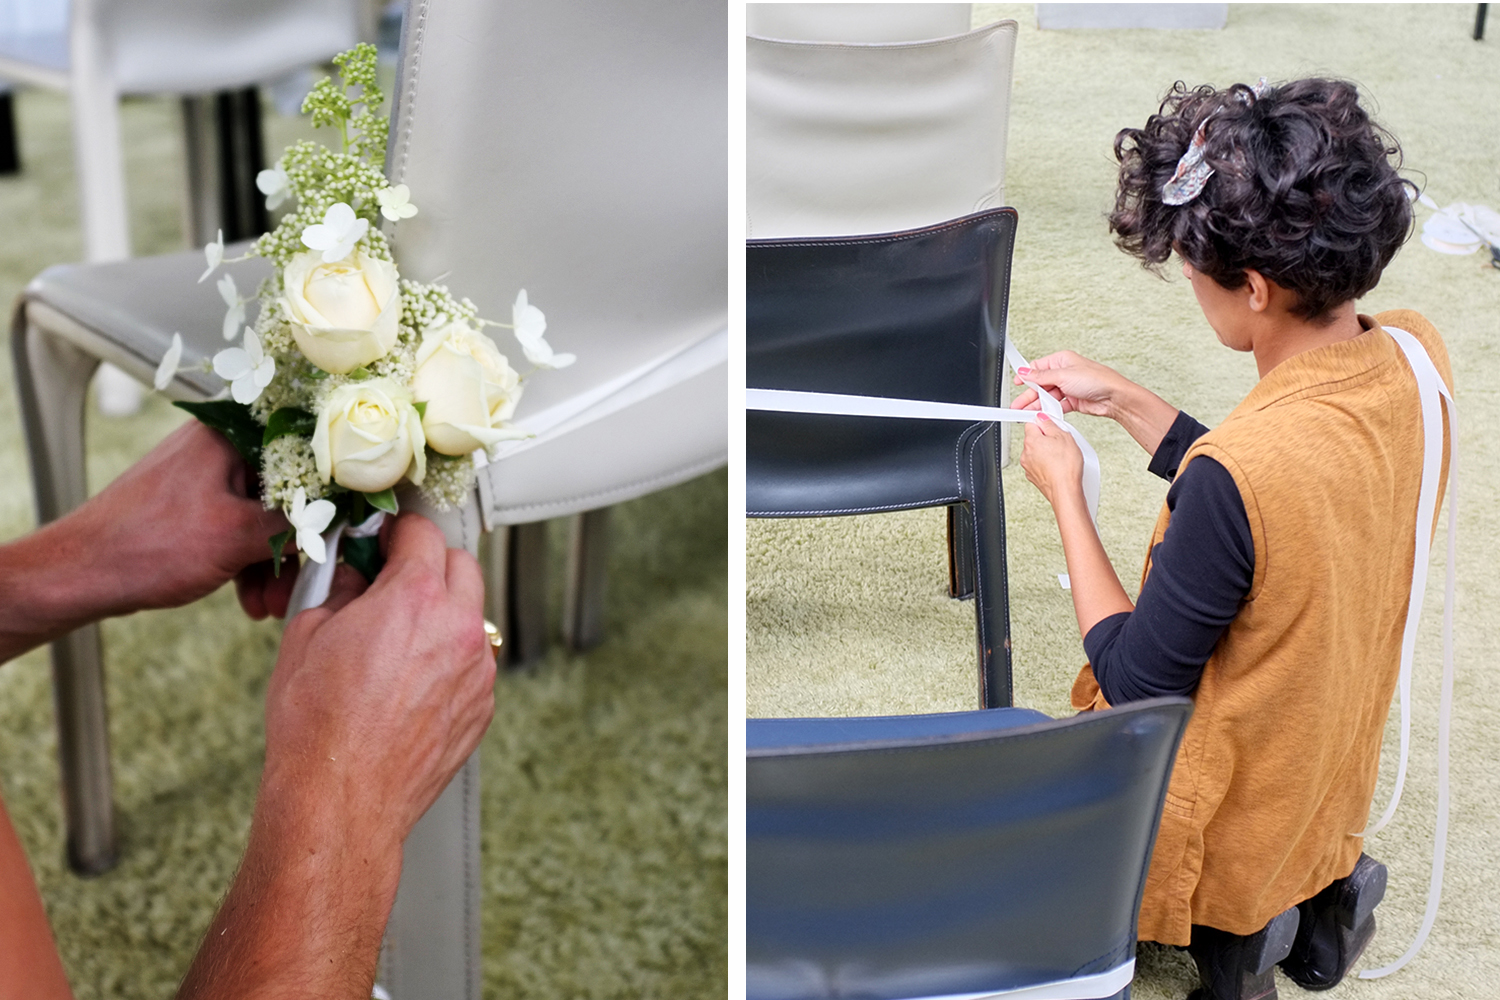 Cream-coloured roses with Hydrangea added a pretty touch to the guest chairs at the ceremony